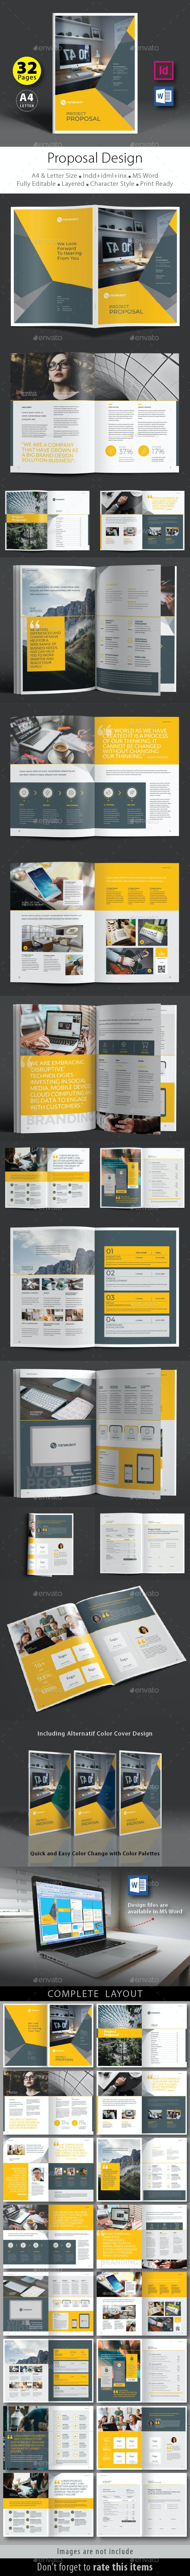 Project Proposal Design Template V.6 - Proposals & Invoices Stationery